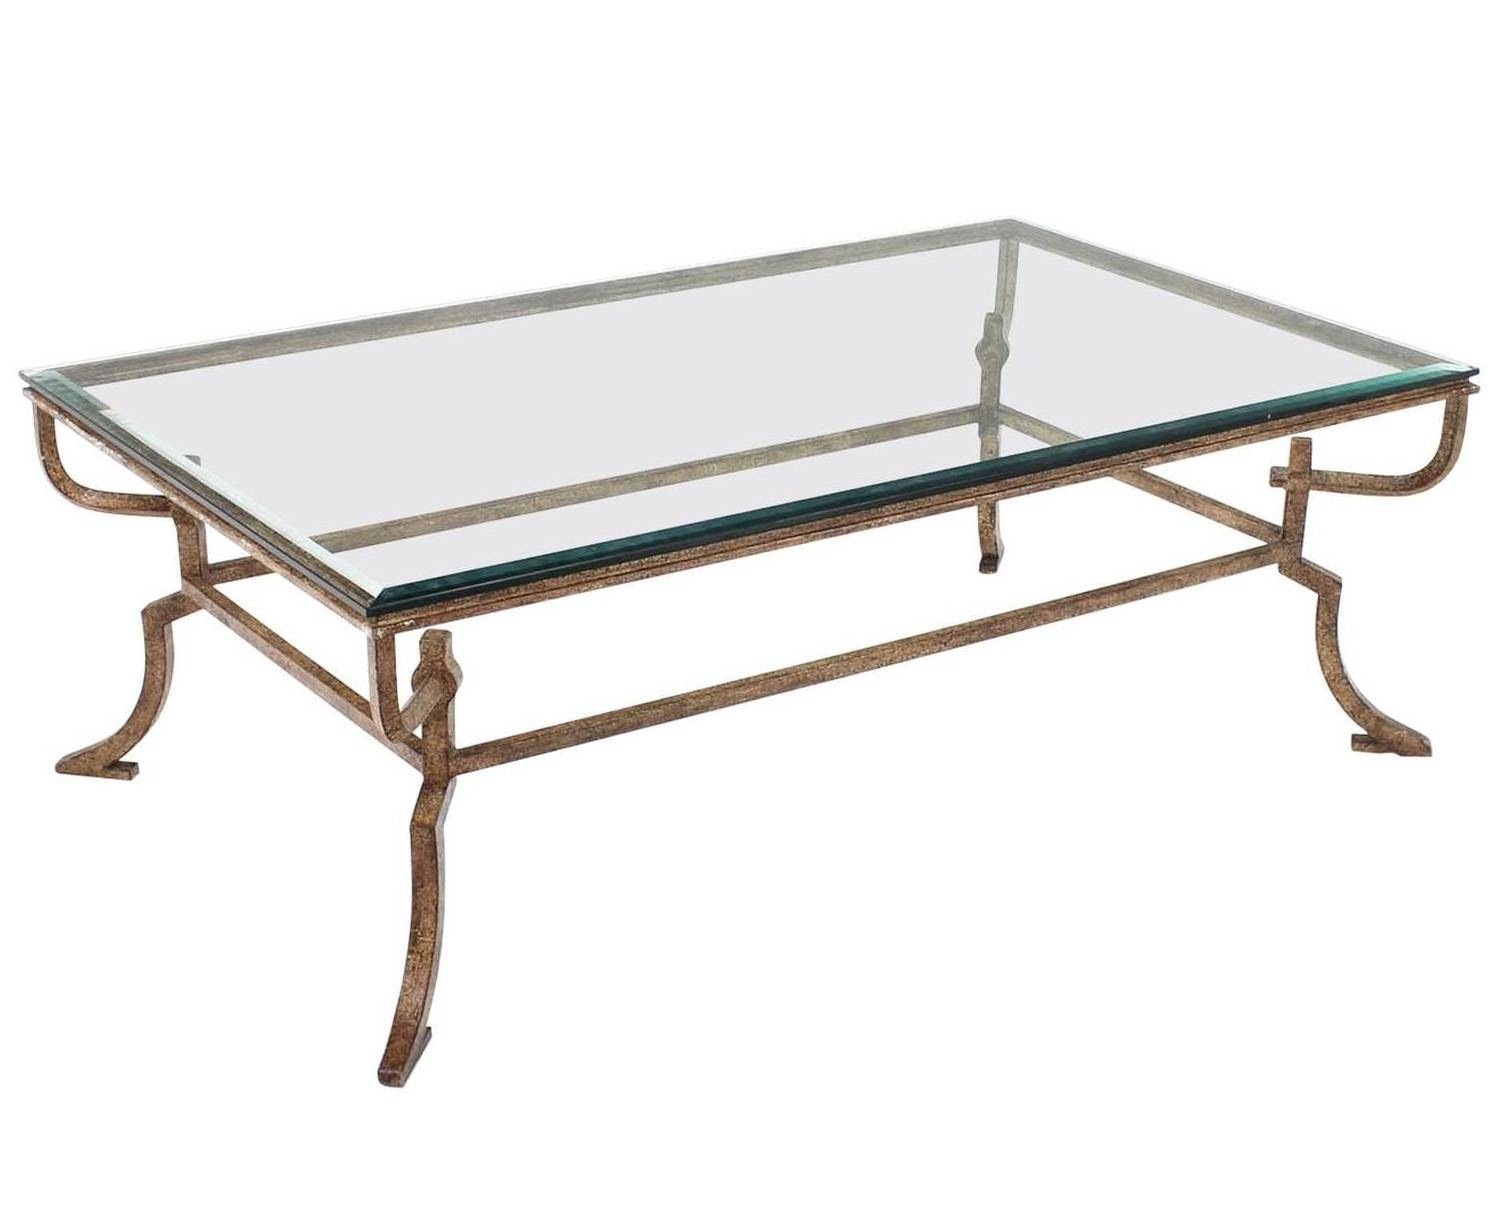 Wrought Iron Coffee Table With Glass And Wooden Round Intended For Iron Glass Coffee Table (View 14 of 15)